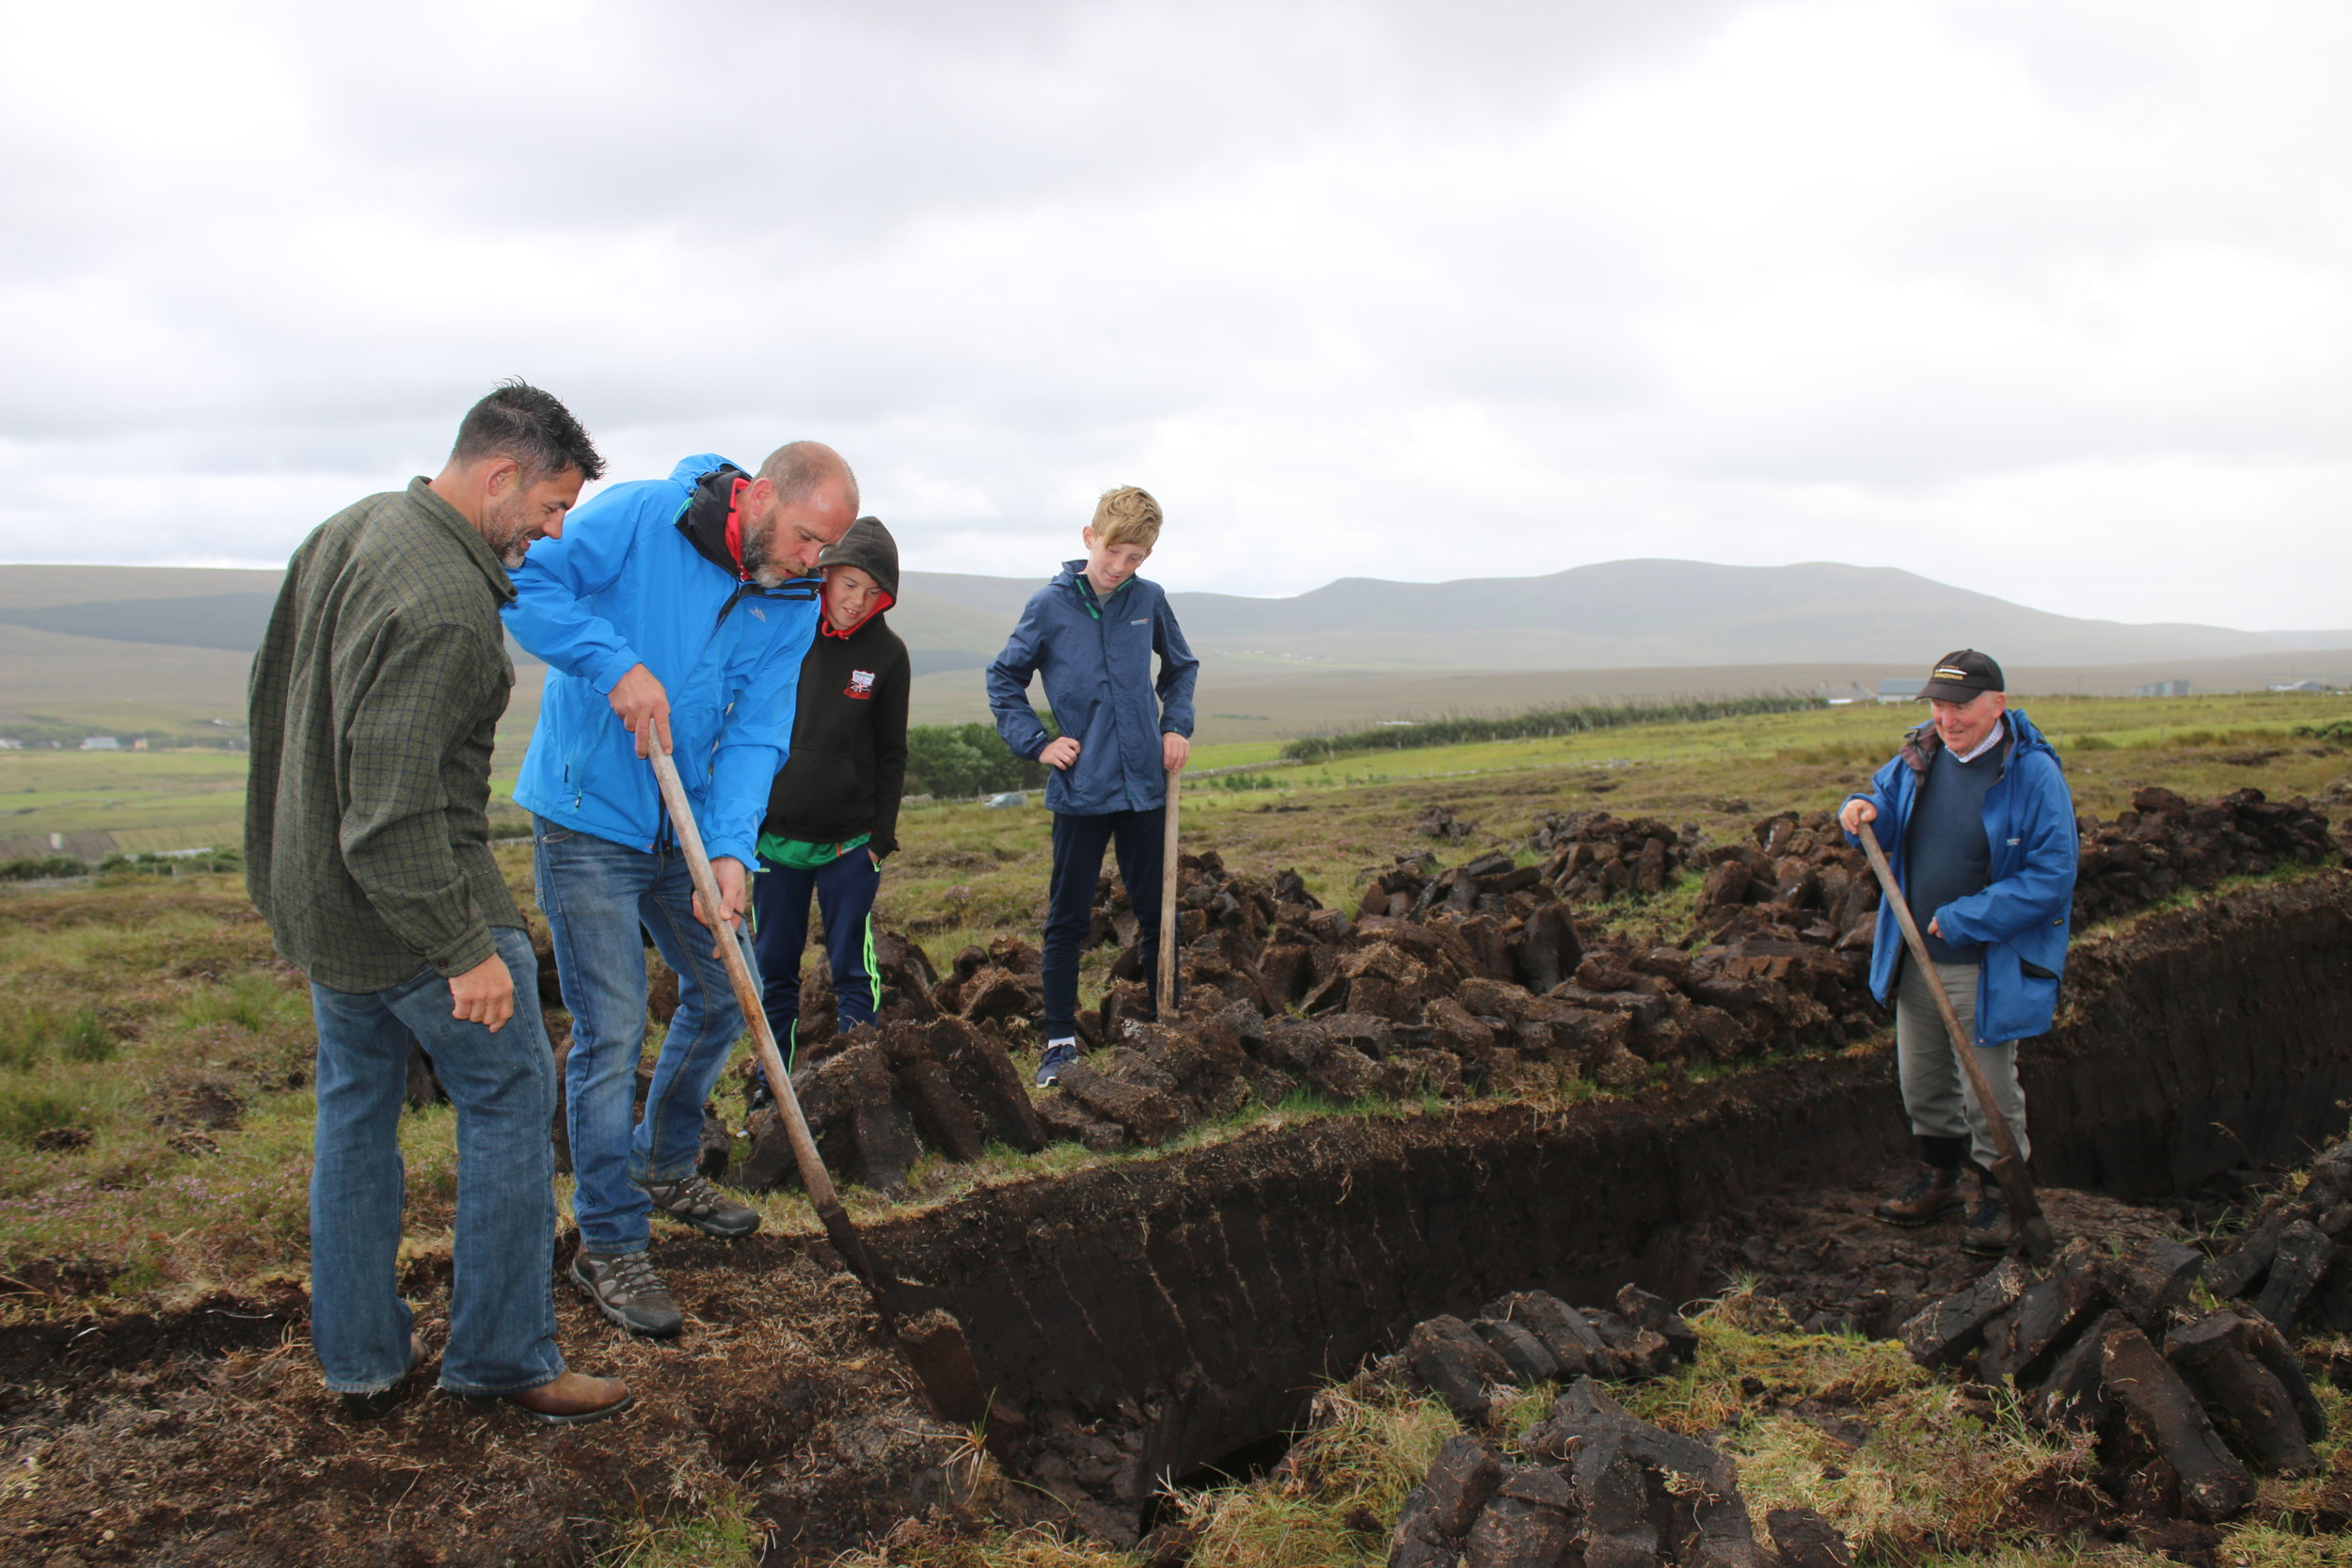 Getting a lesson in peat cutting